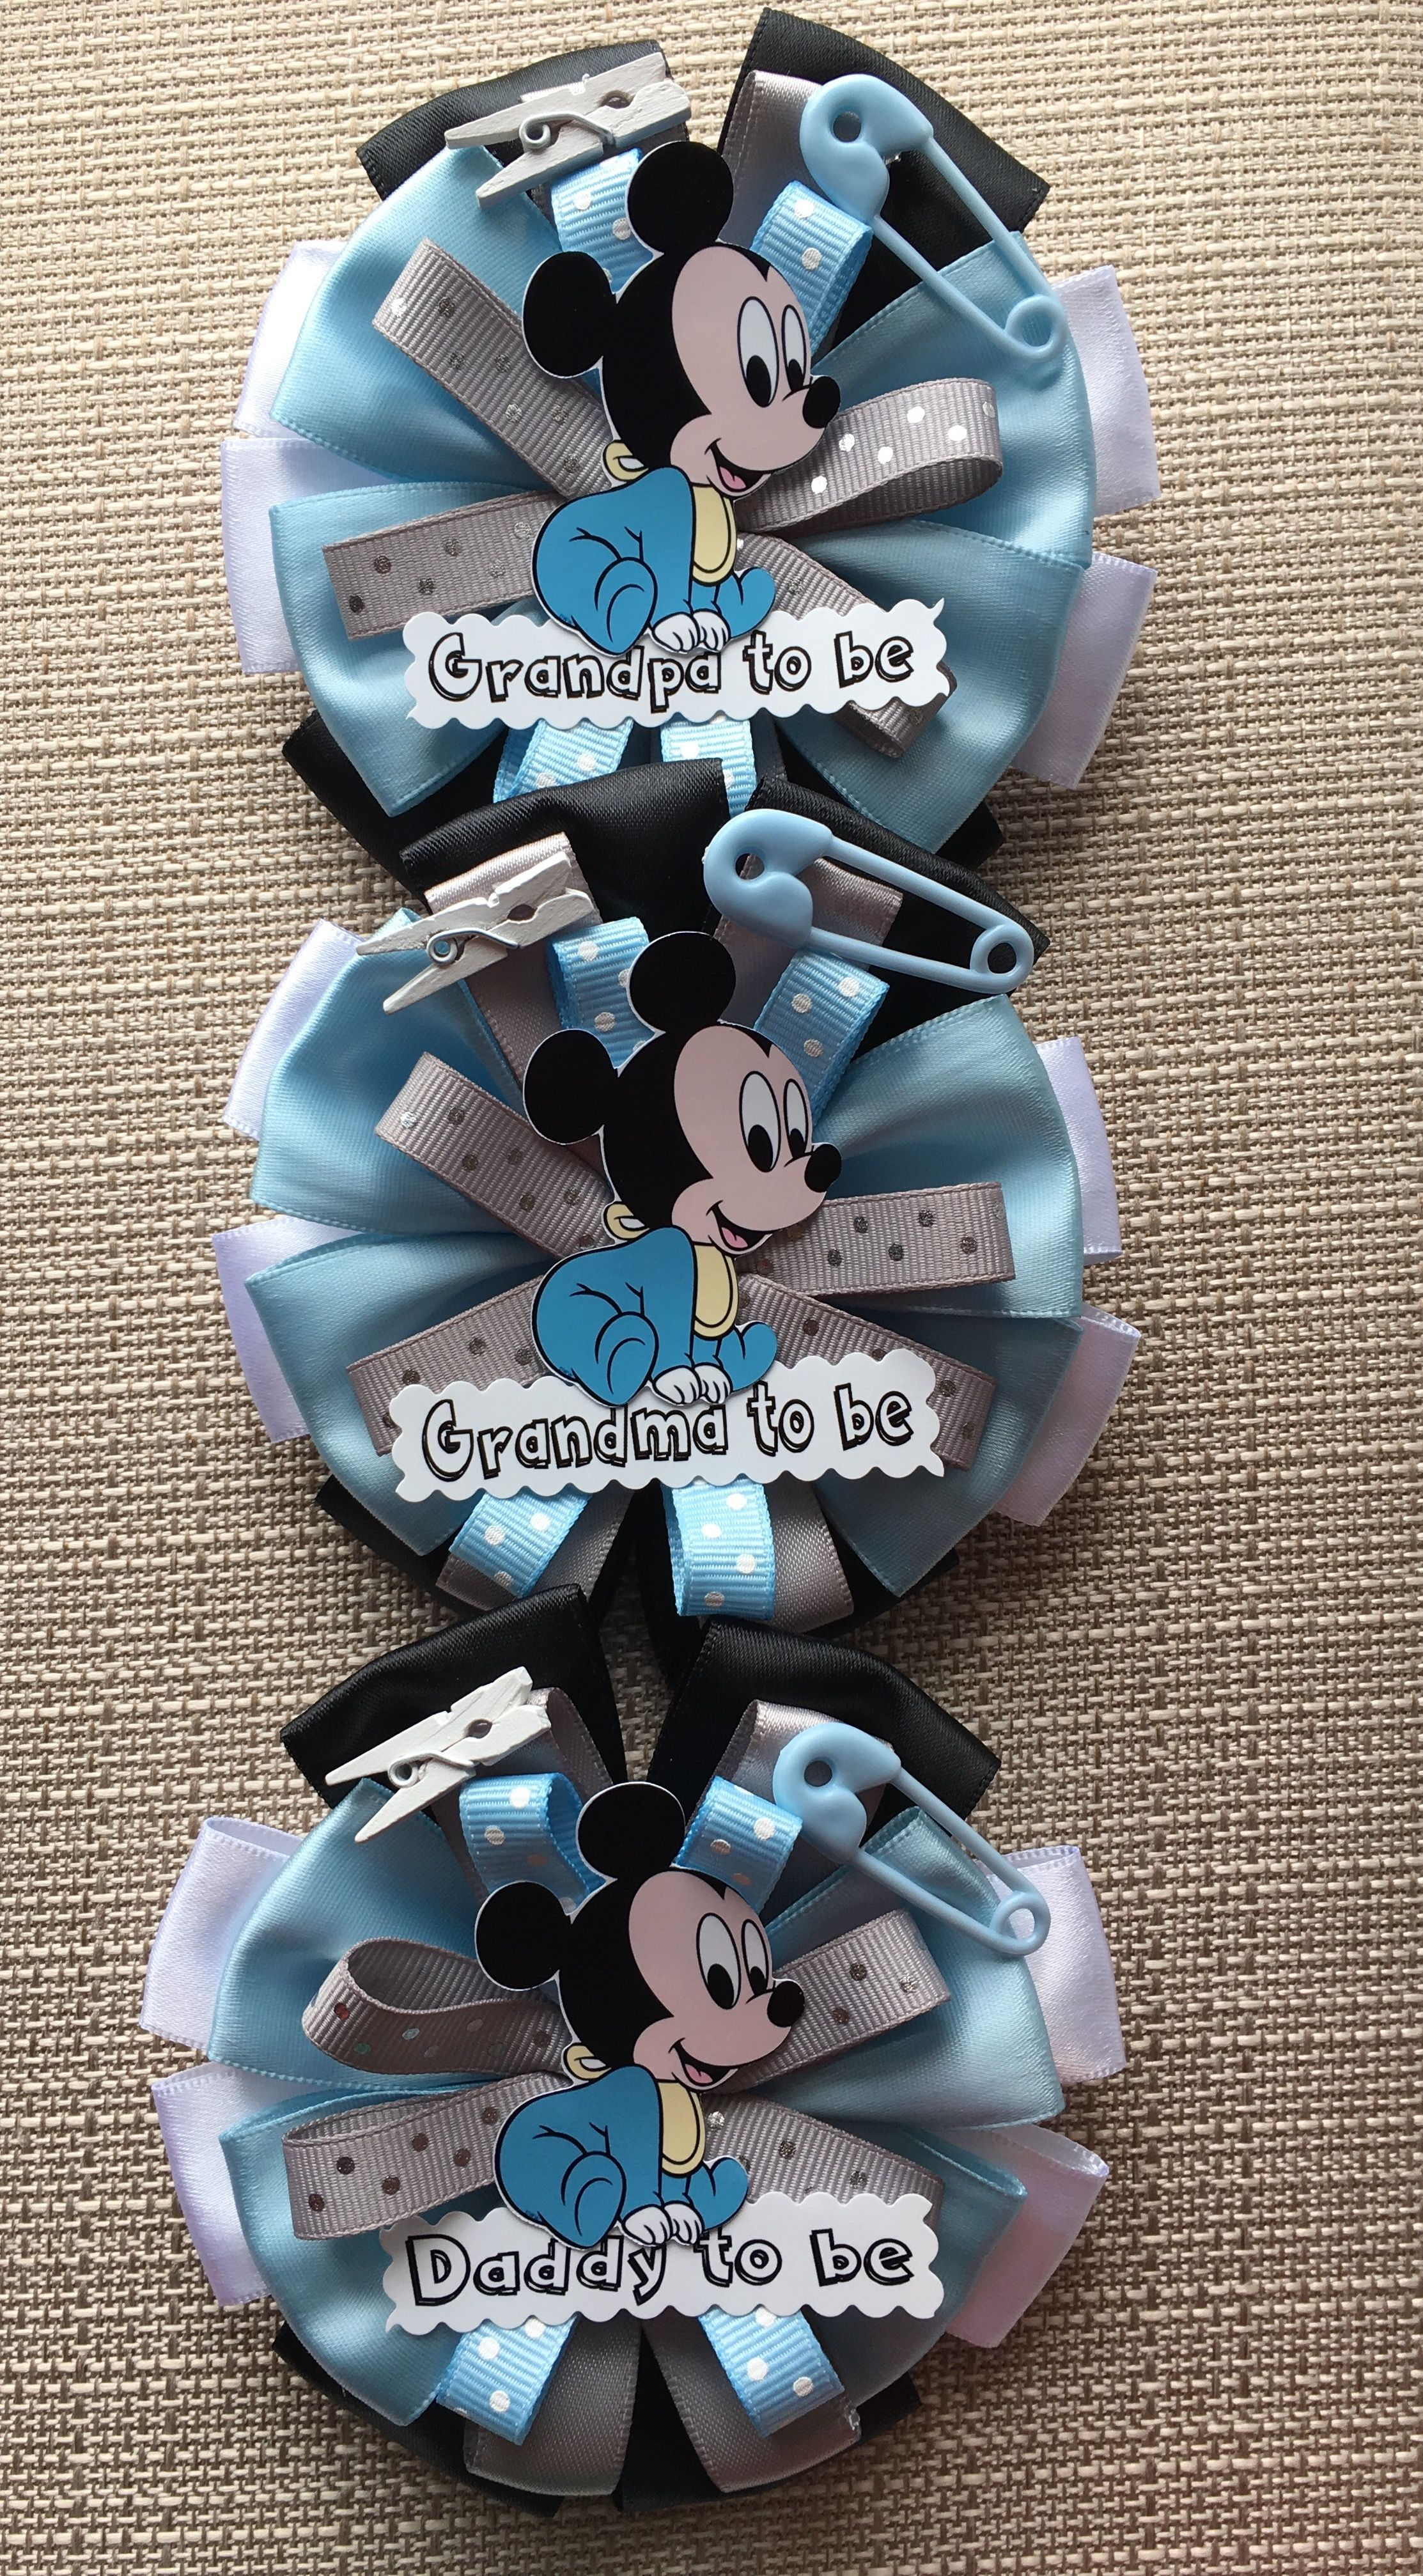 Mickey Mouse Pins For Grandma Grandpa And Daddy To Be Mickey